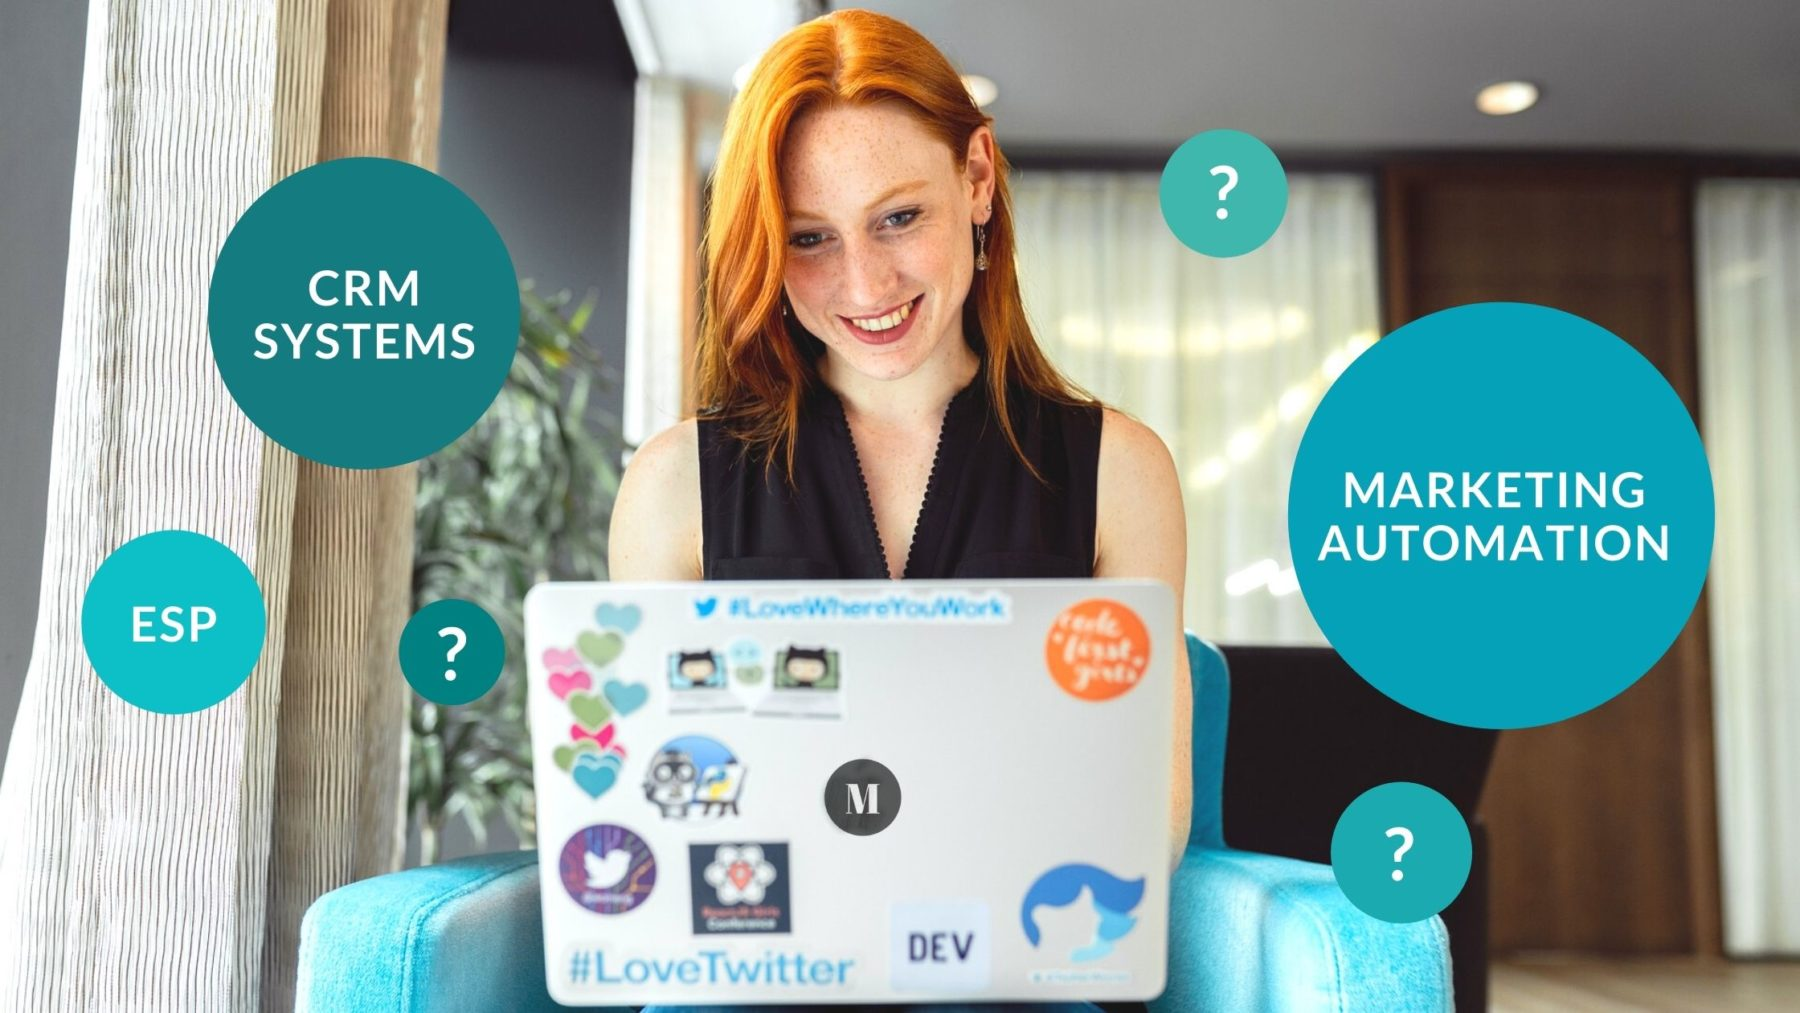 CRM and Marketing Automation Systems What's the difference